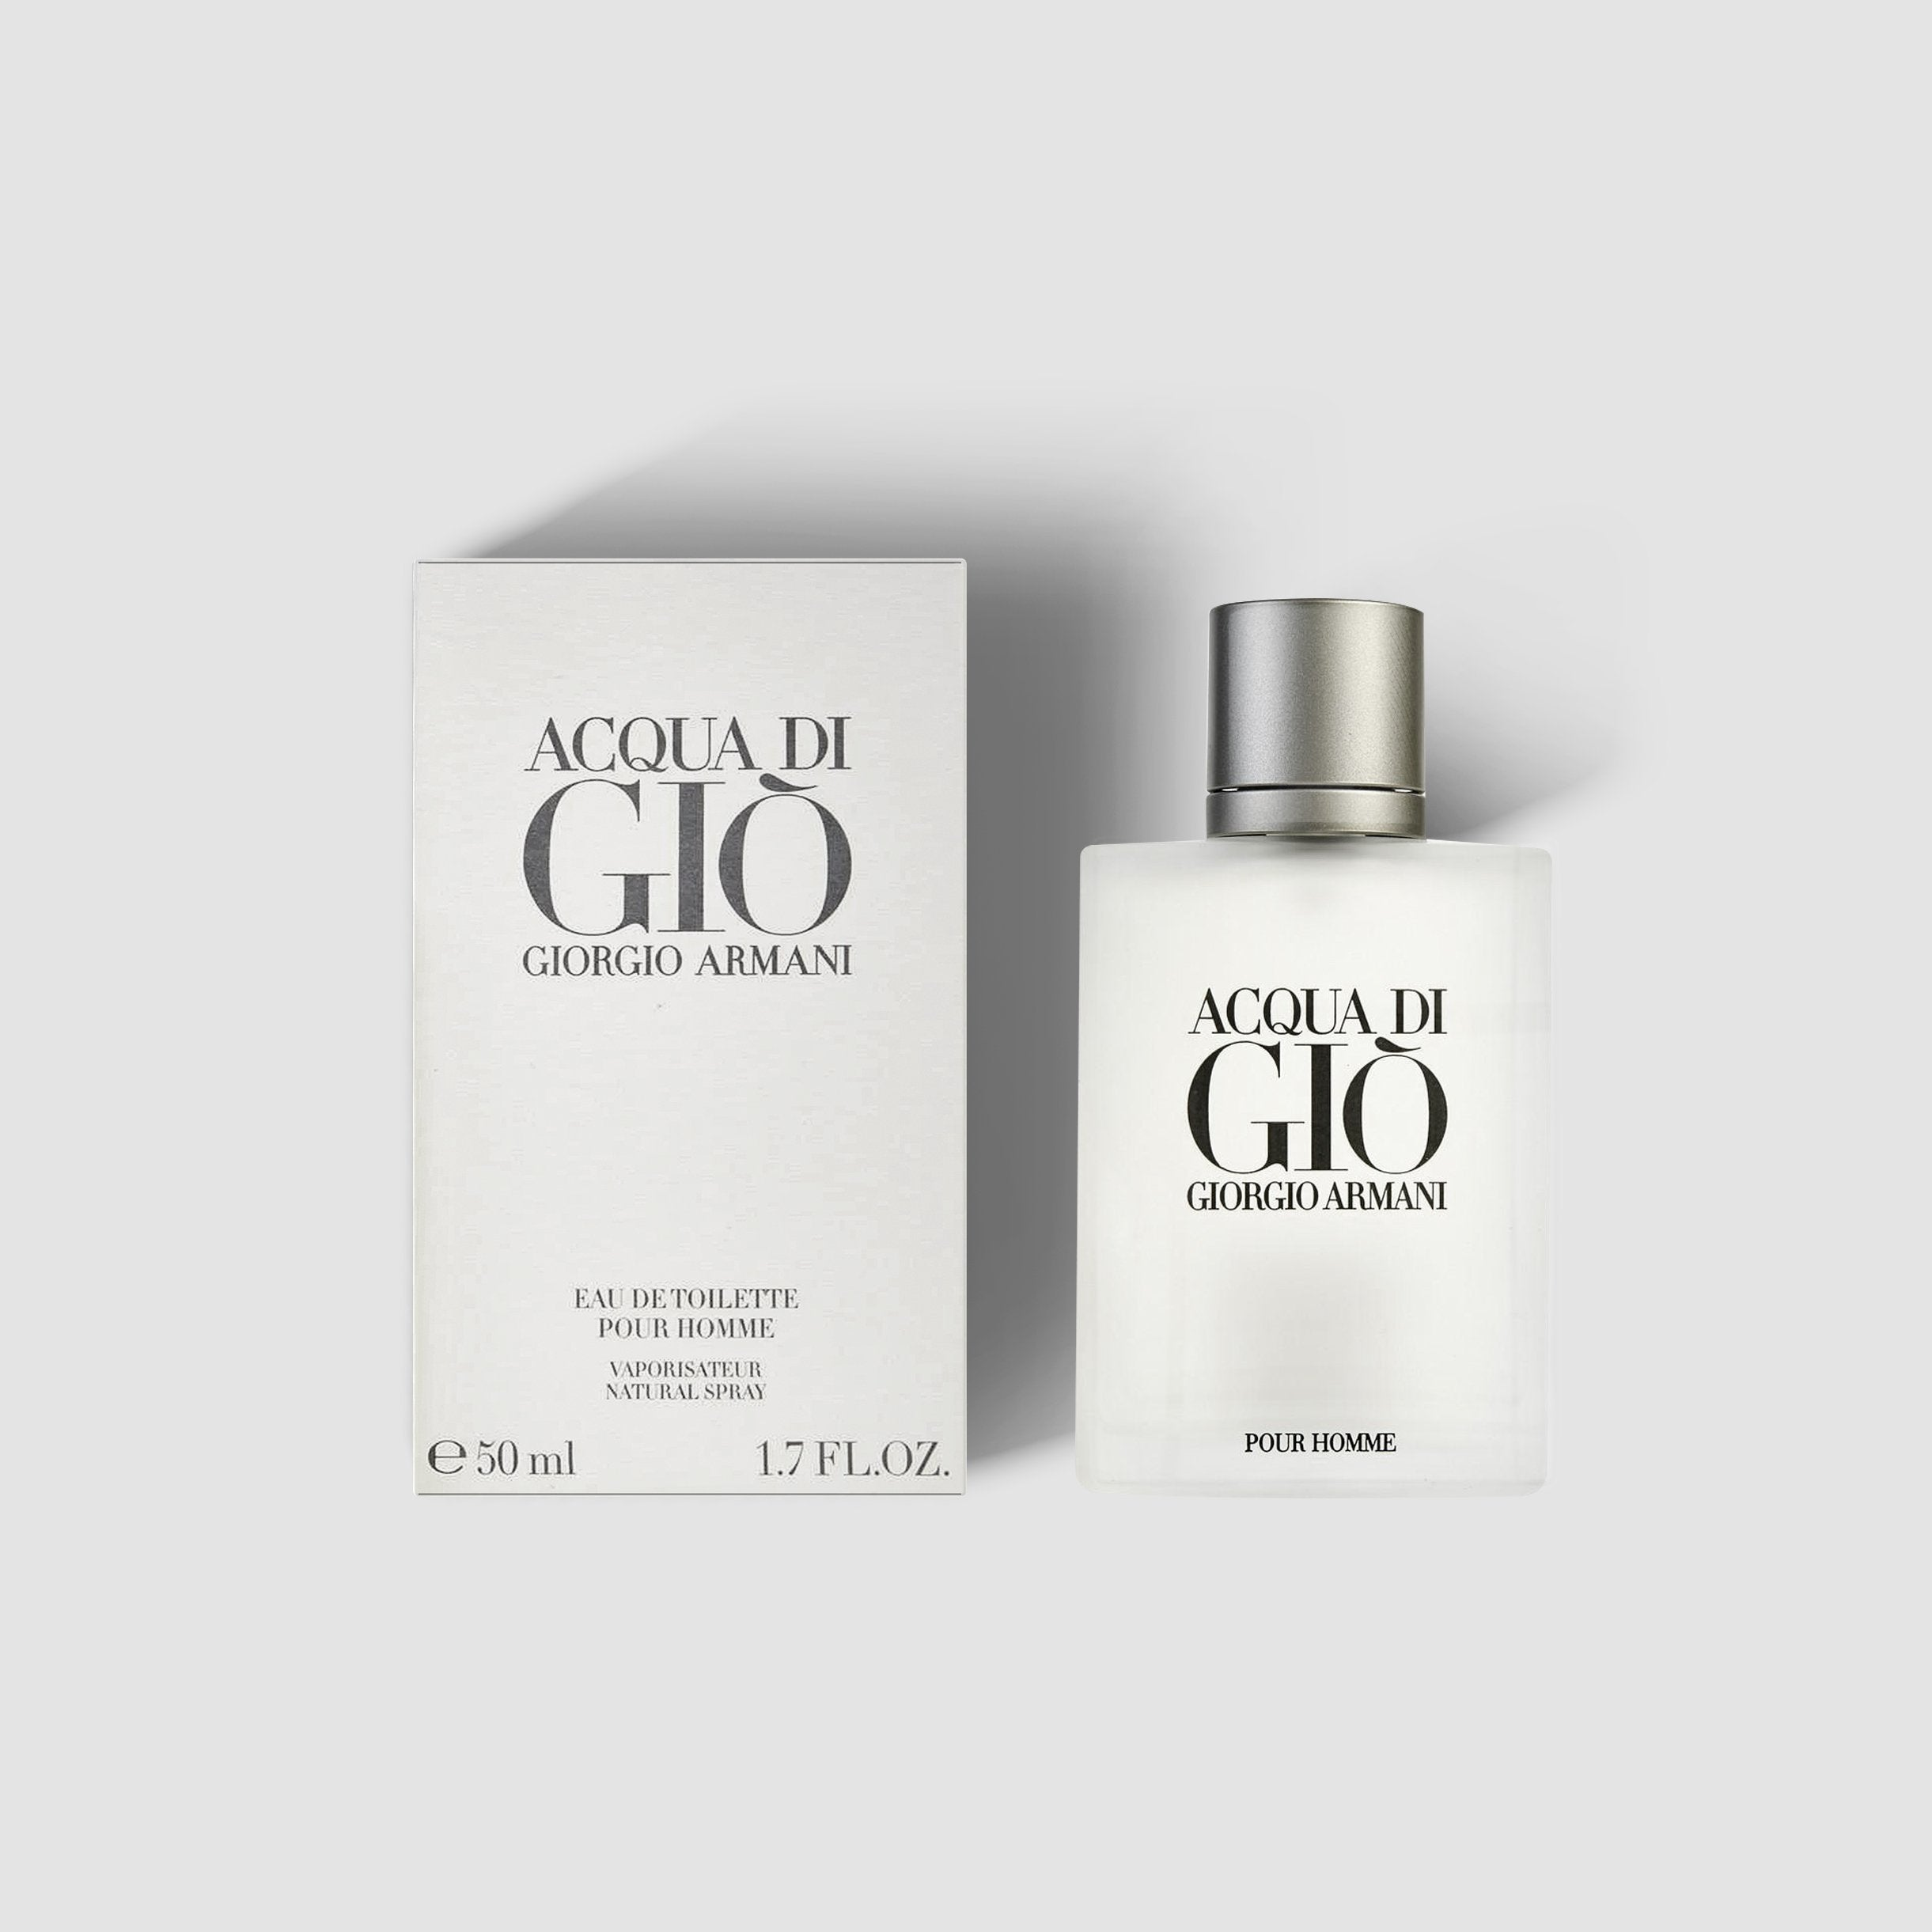 Acqua Di Gio Eau De Toilette Spray for Men - AromaFi.com